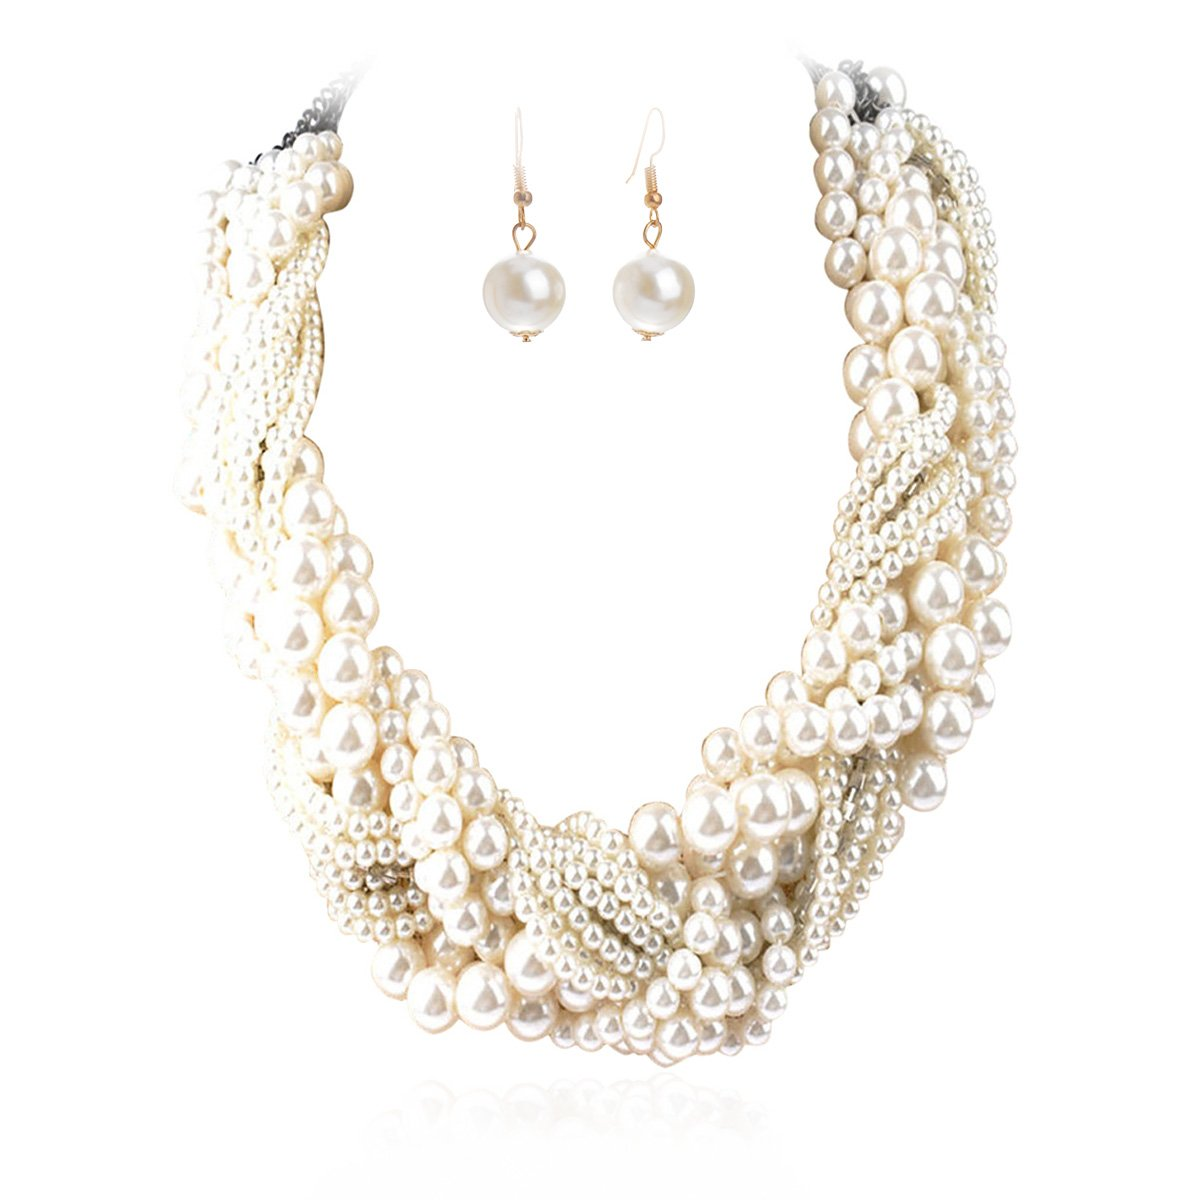 IPINK Women's Fashion Jewelry Pearl Multi-Pearl Shell Necklace Chokers Chains Earring Jewelry Set